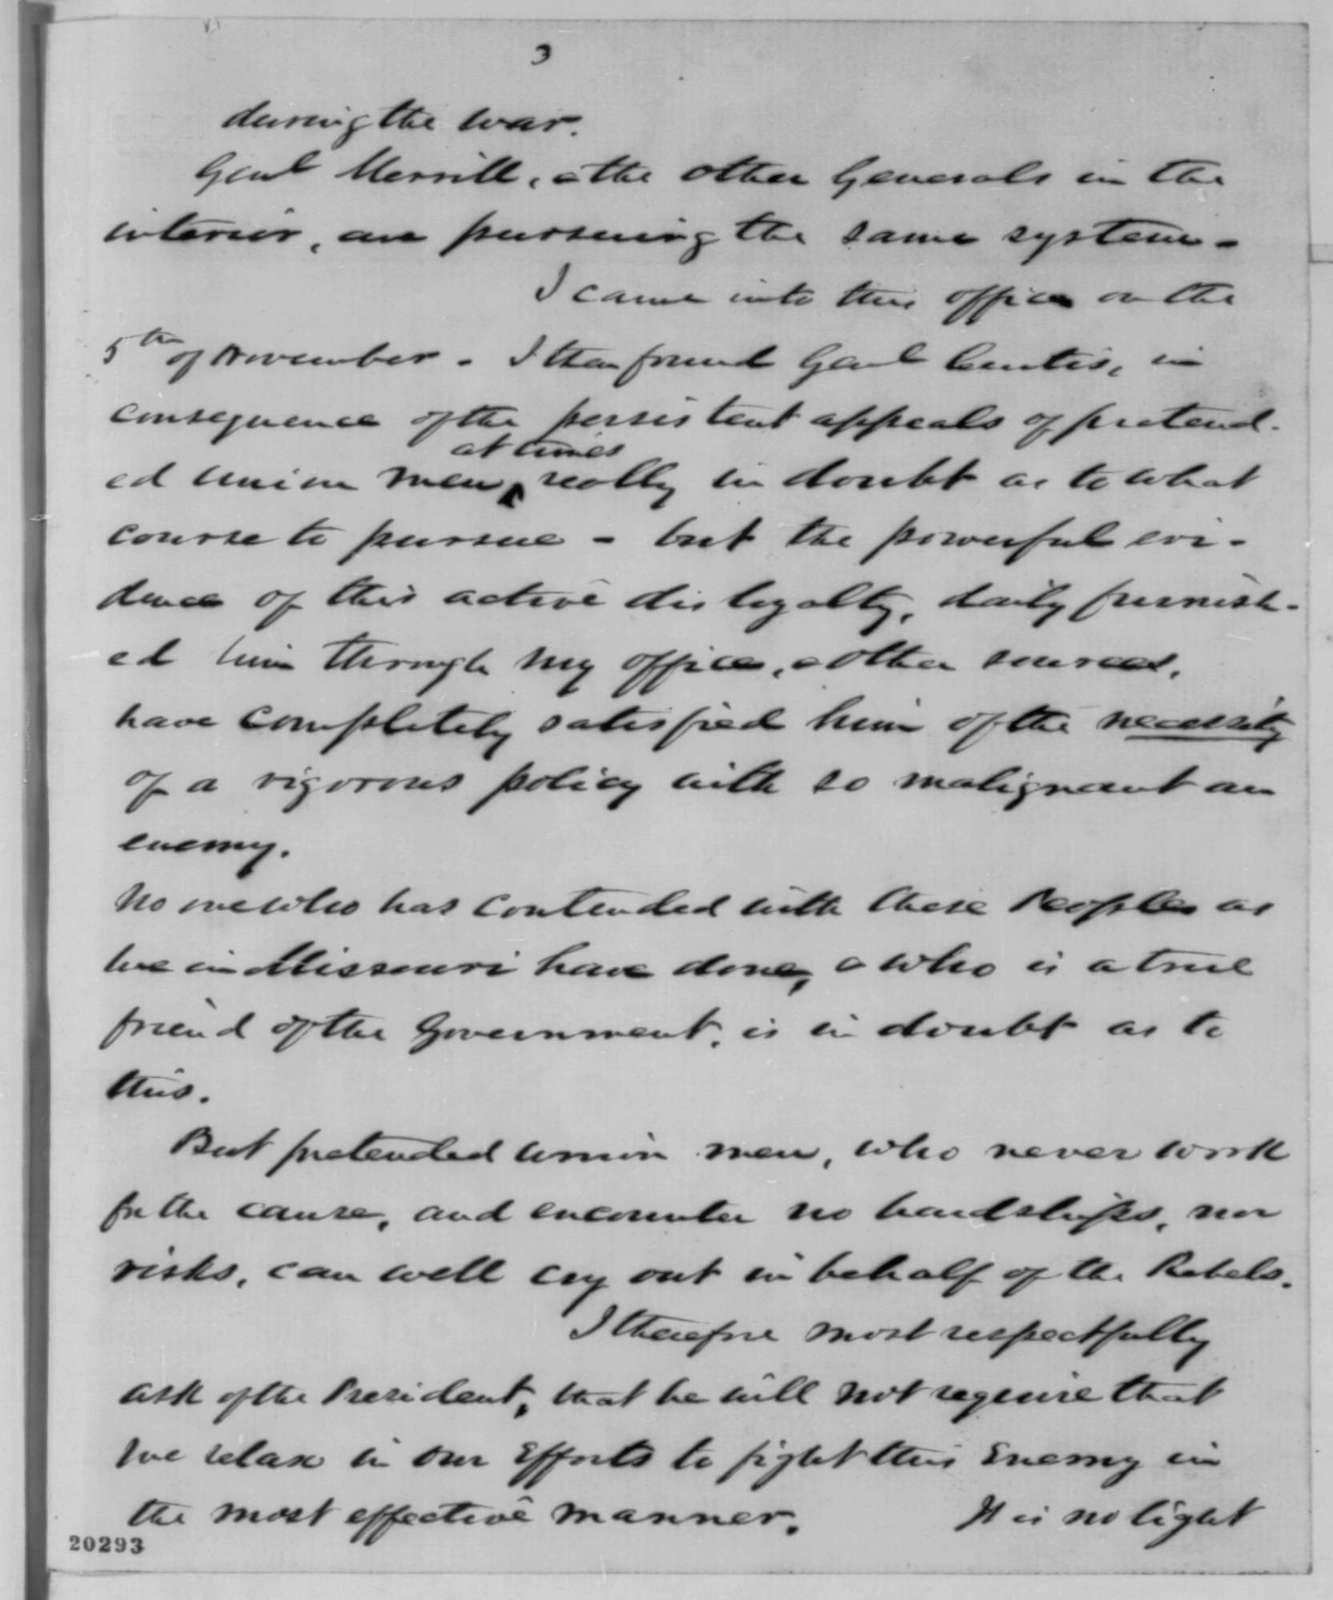 Franklin A. Dick to Abraham Lincoln, Friday, December 19, 1862  (Situation in Missouri)